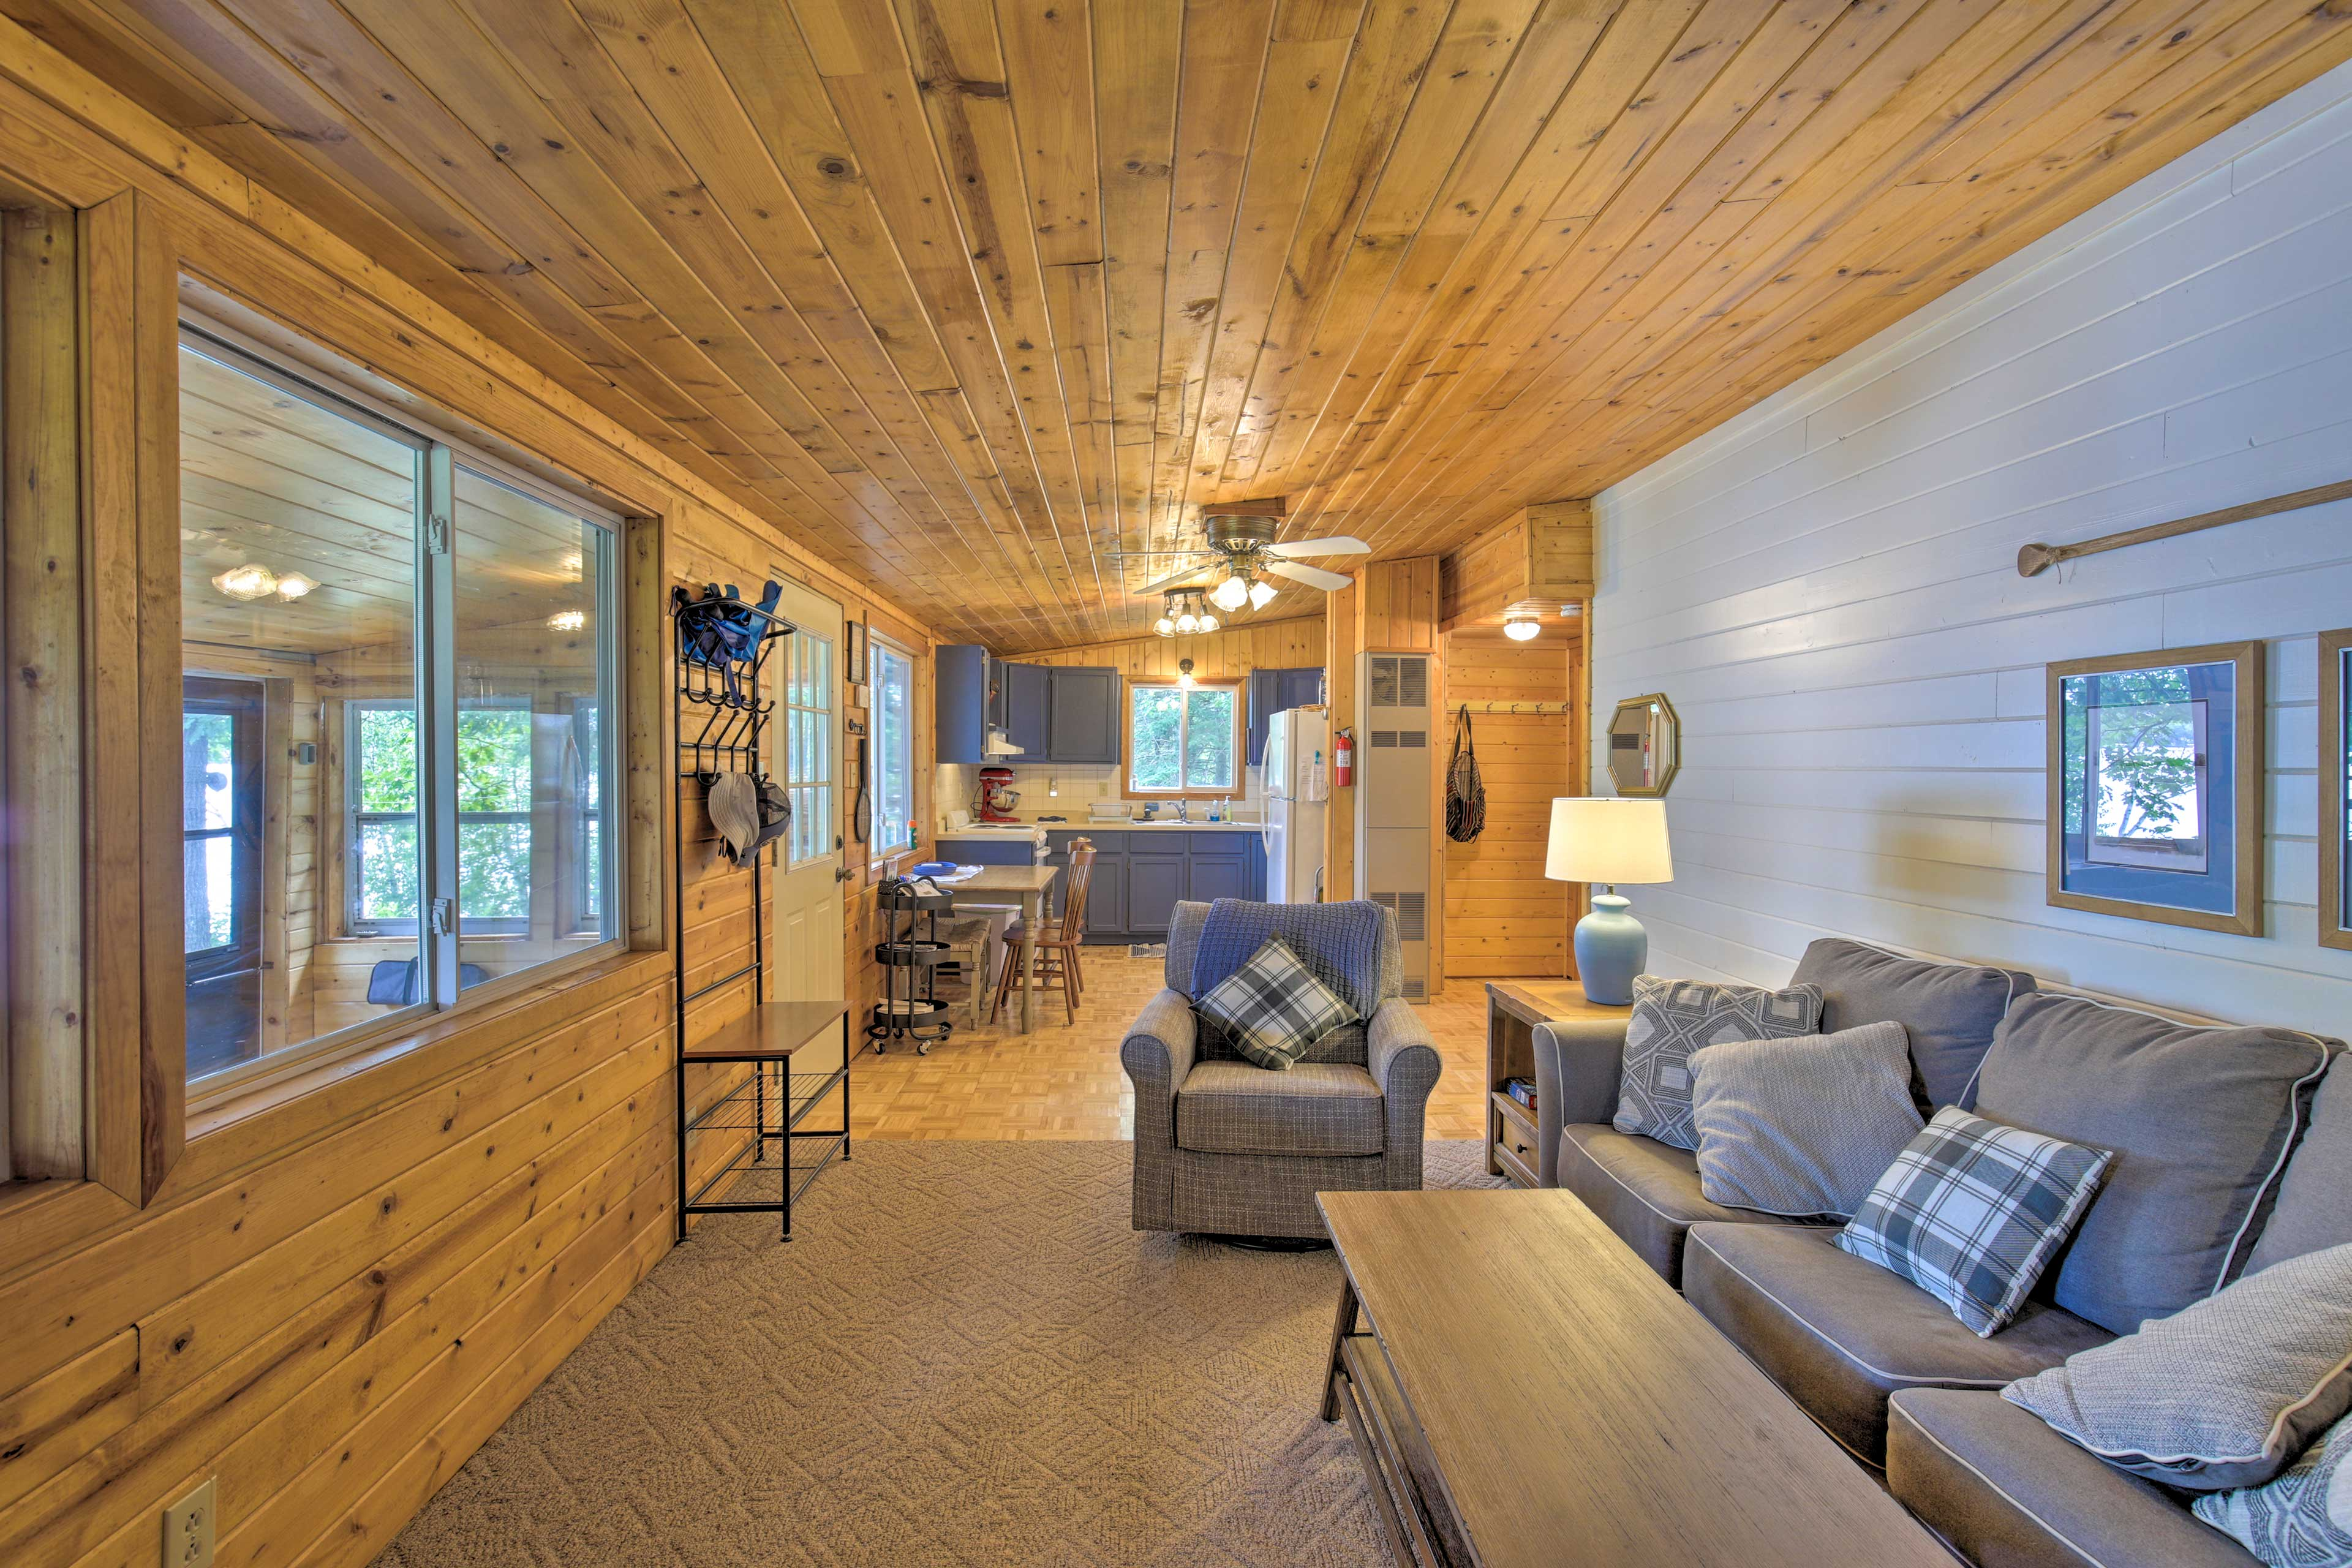 This property exudes a lake-cabin vibe.